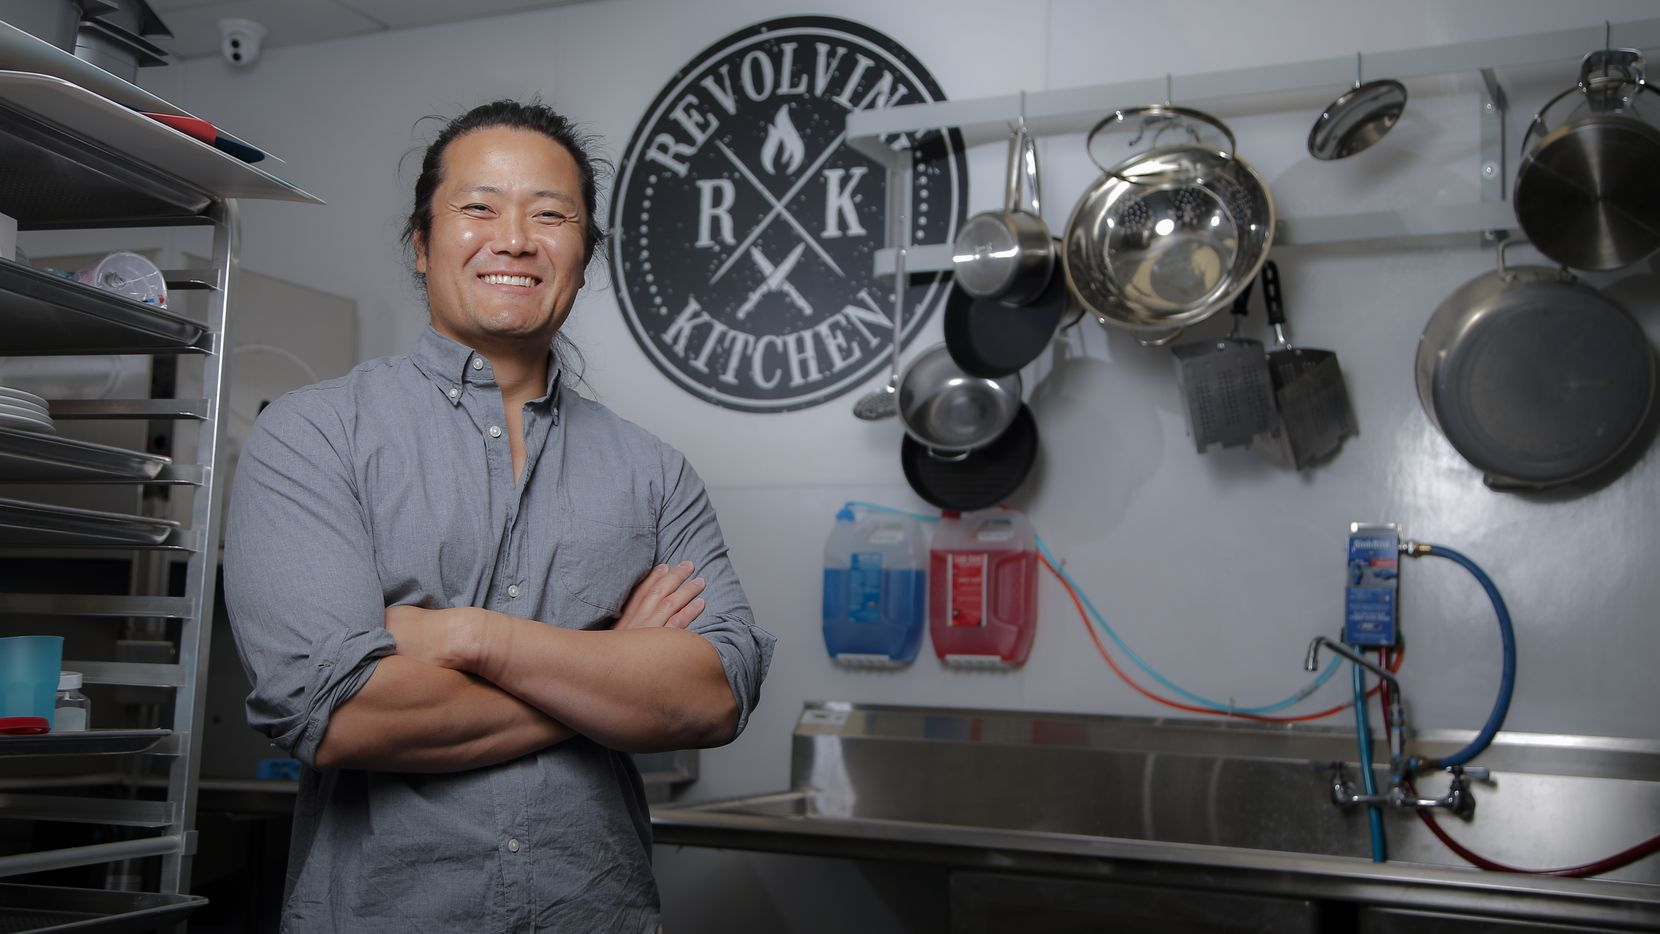 Tyler Shin is owner and managing member of Revolving Kitchen in Garland. Revolving Kitchen's 25 units are rentable by the hour or on a long-term basis. (Brandon Wade/Special Contributor)